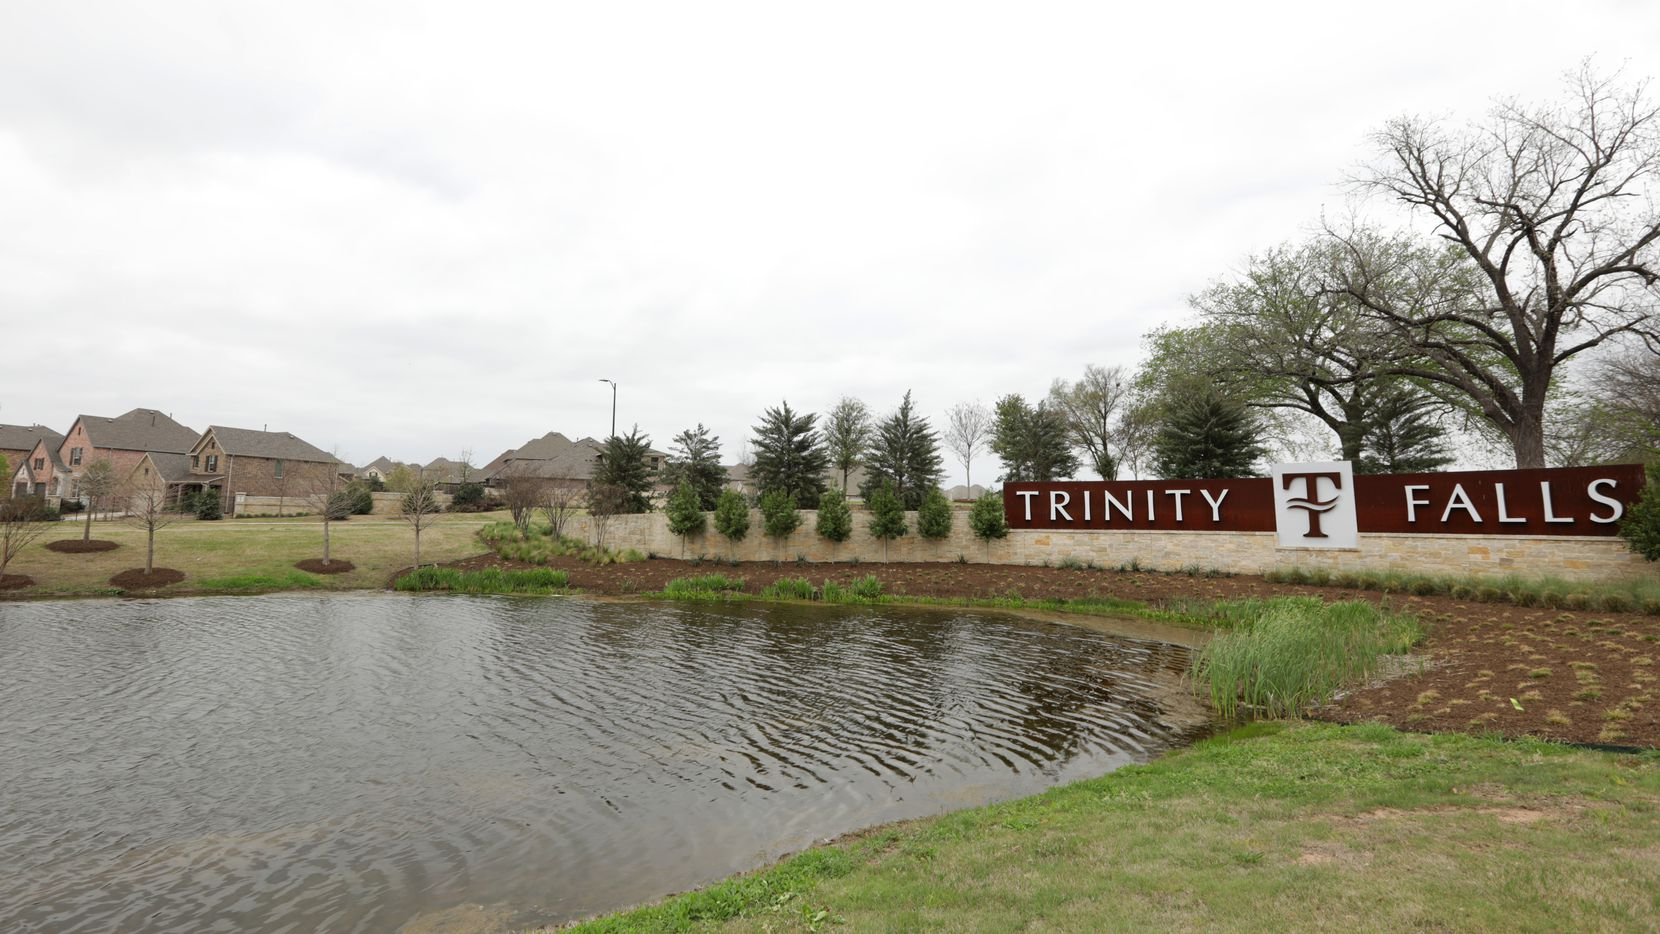 The Trinity Falls community north of McKinney is adding a new neighborhood by Del Webb aimed at older buyers.